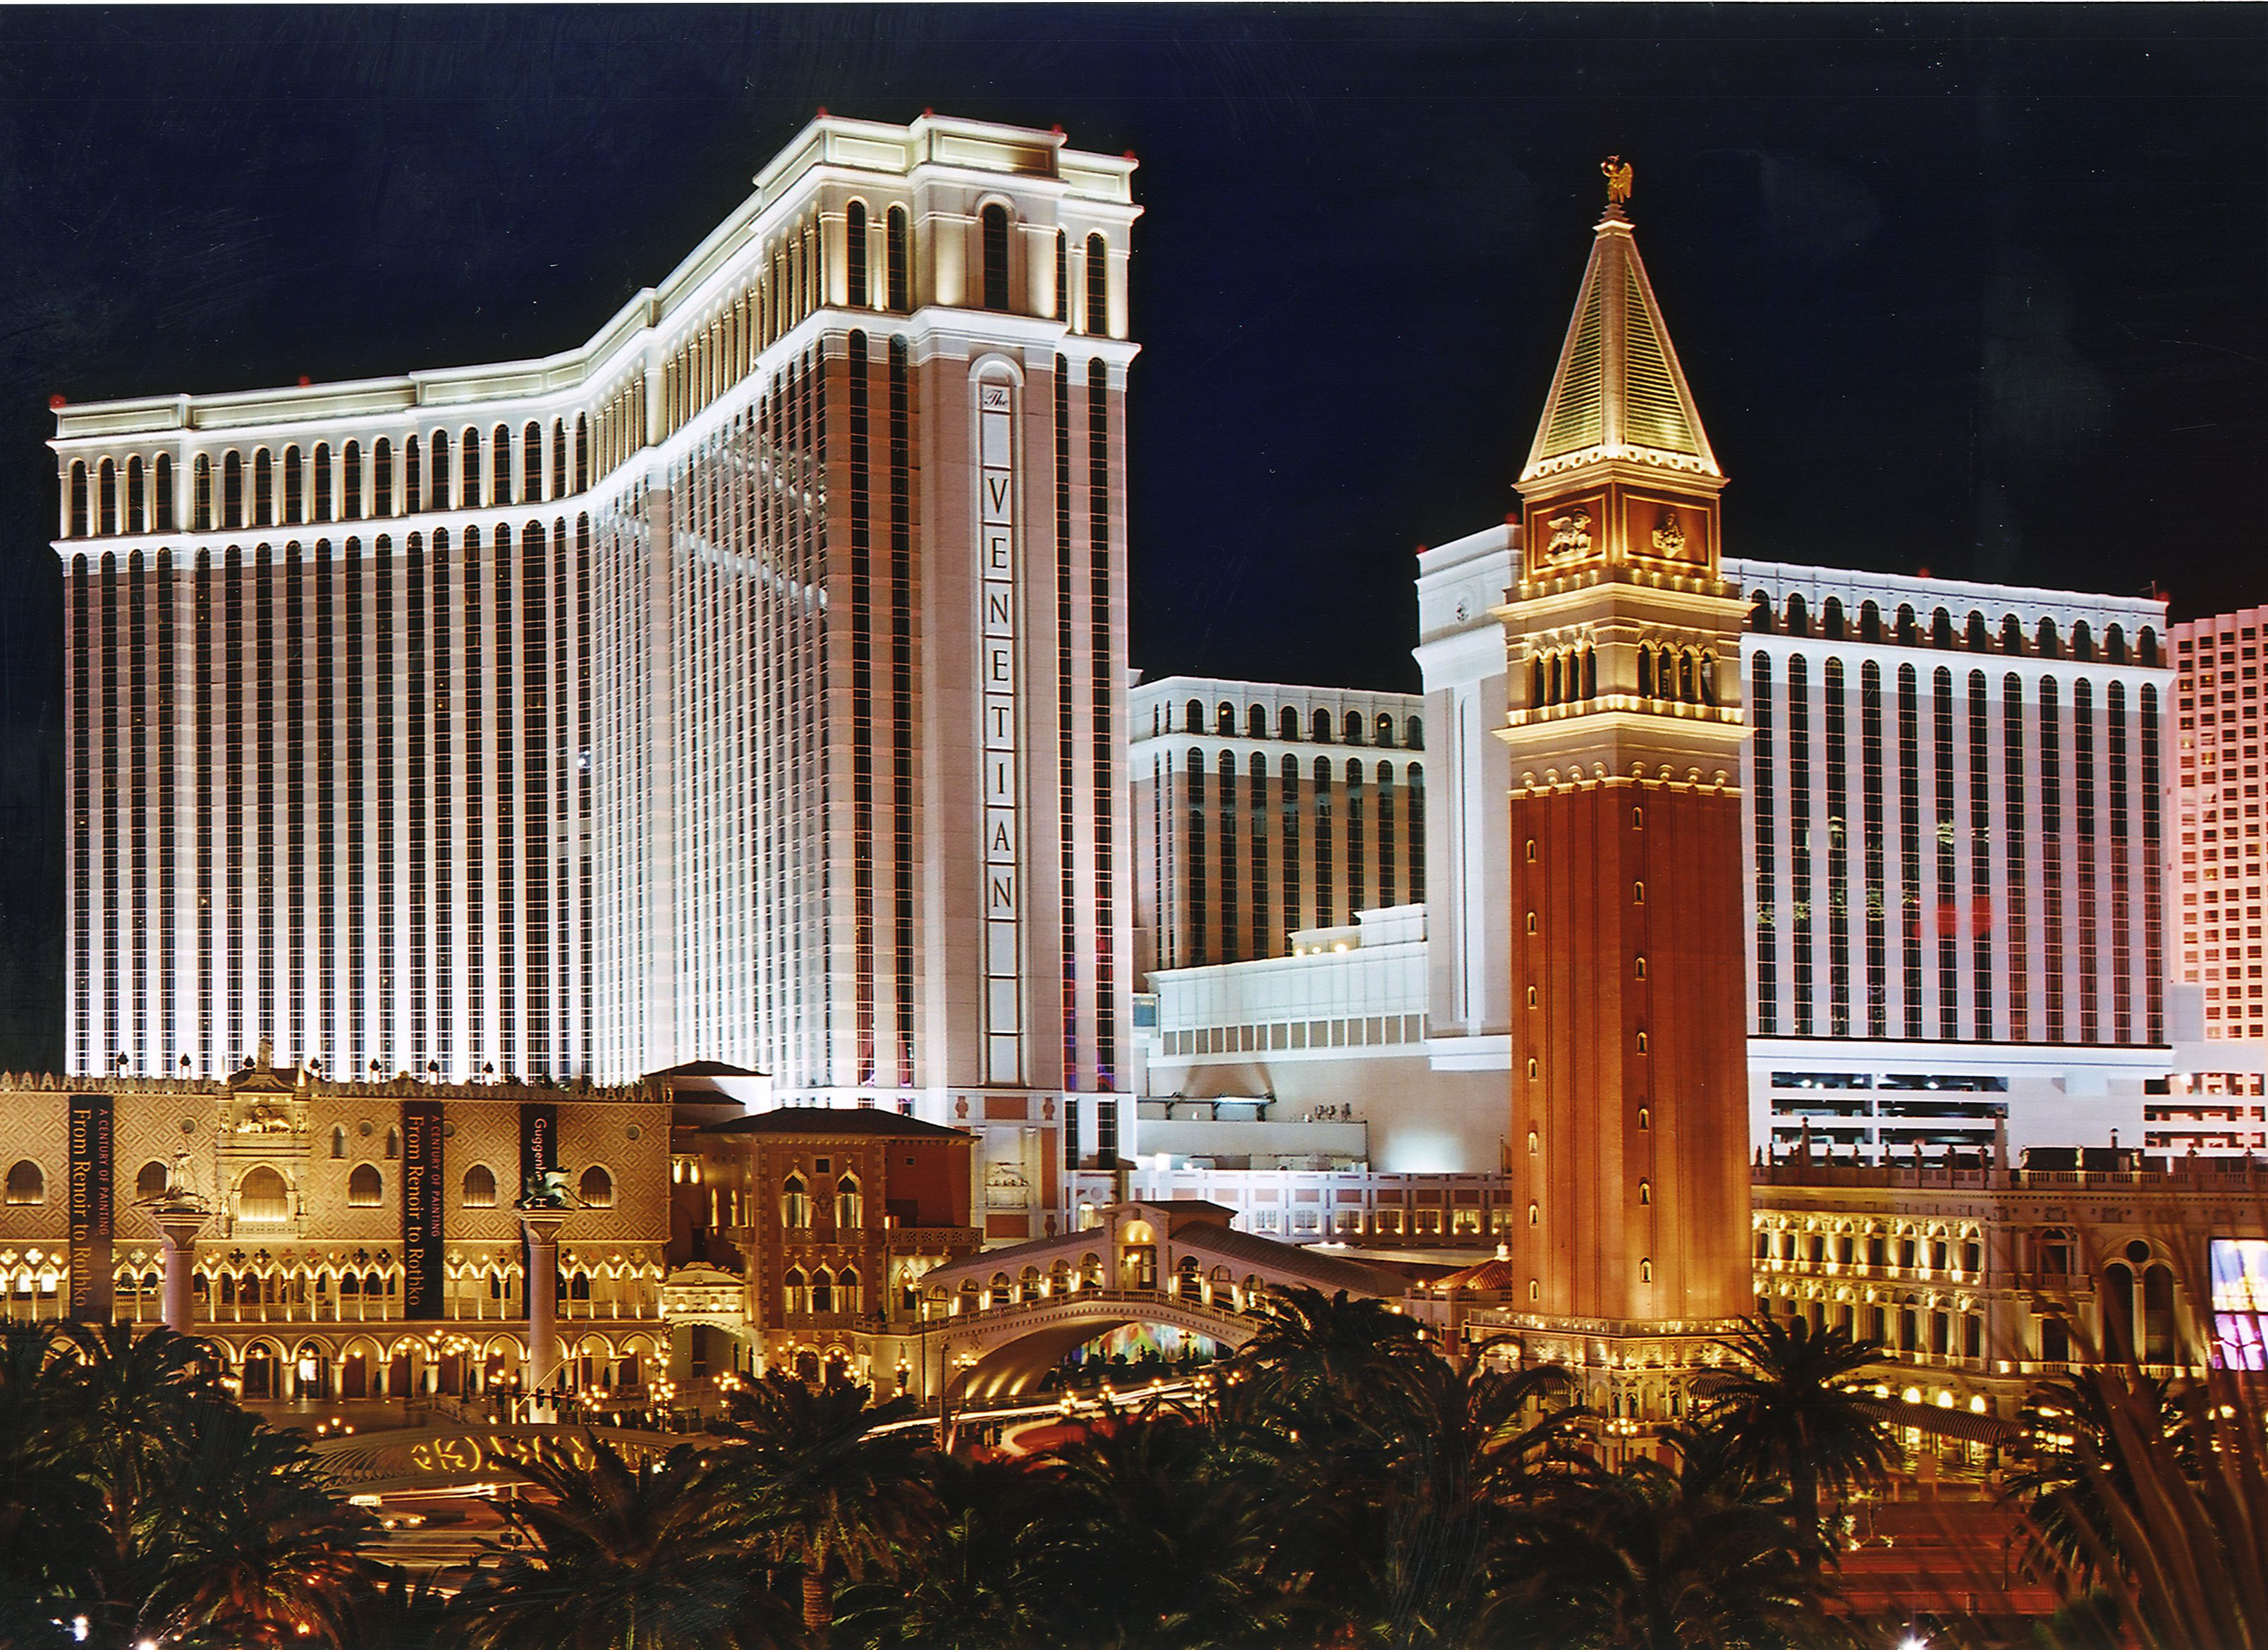 Intercontinental Las Vegas The Venetian The Palazzo With